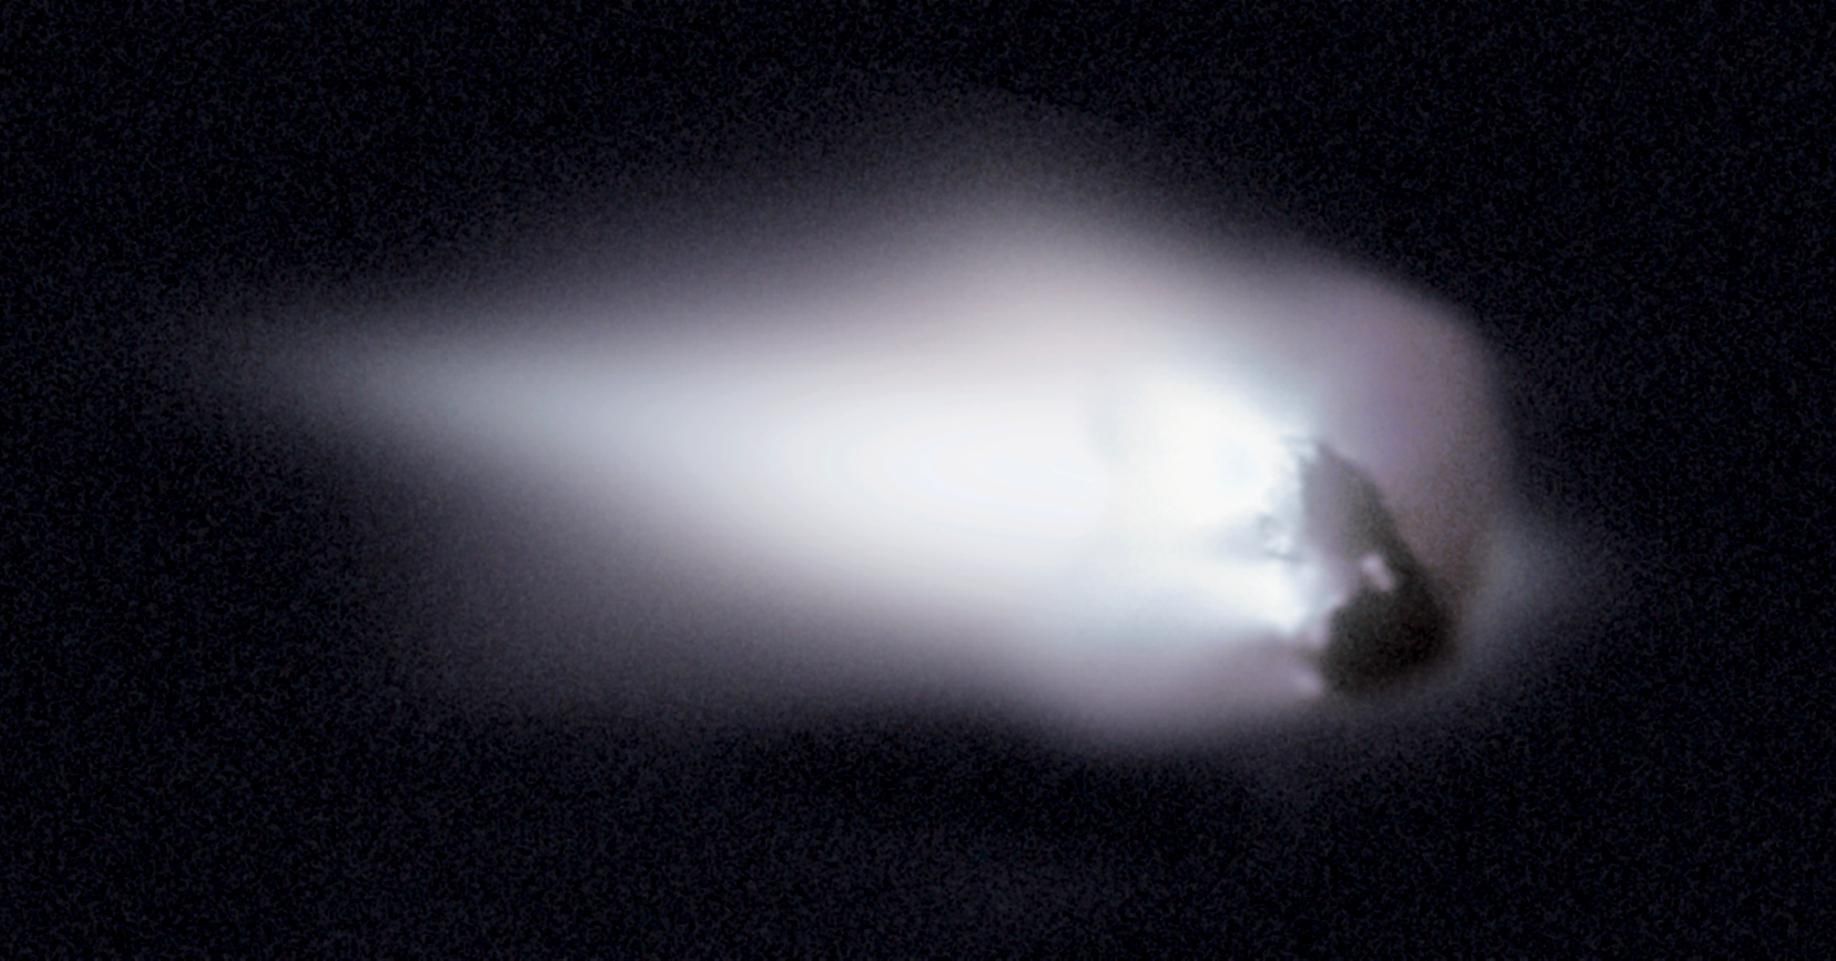 """Comet Halley as photographed by ESA spacecraft """"Giotto"""" in 1986"""